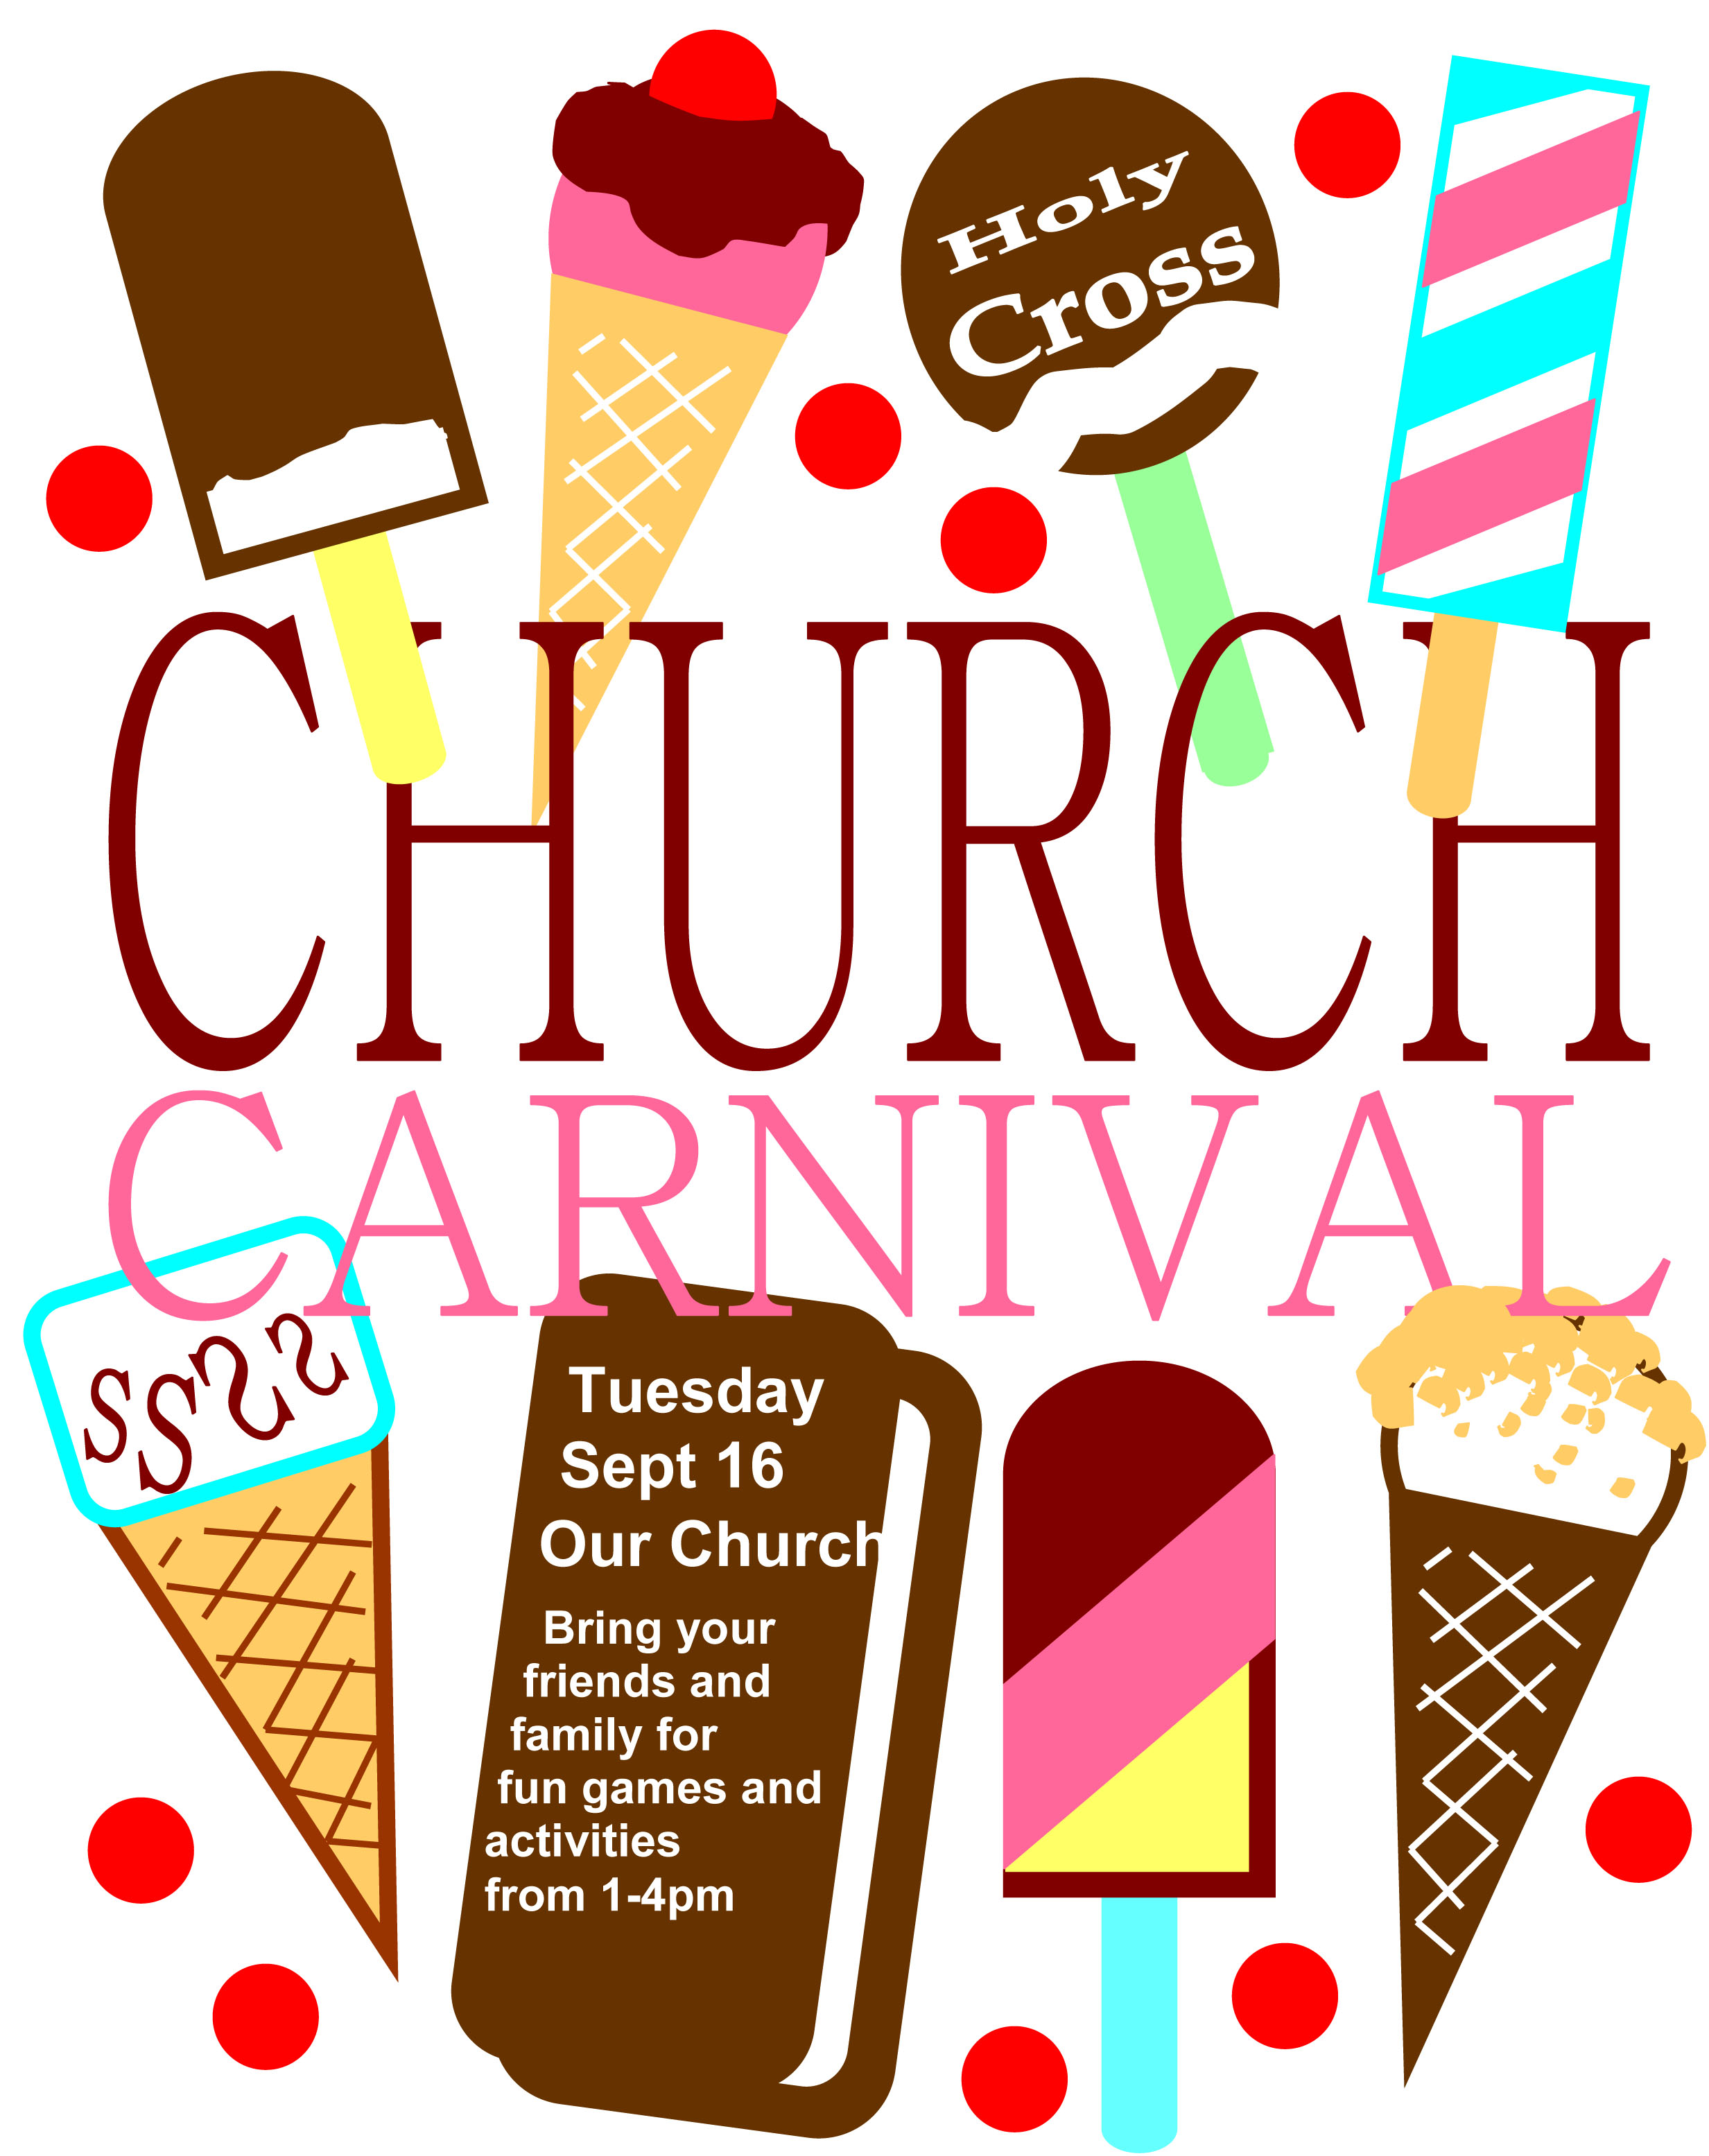 Church Carnival Flyer Templates Using Microsoft Office